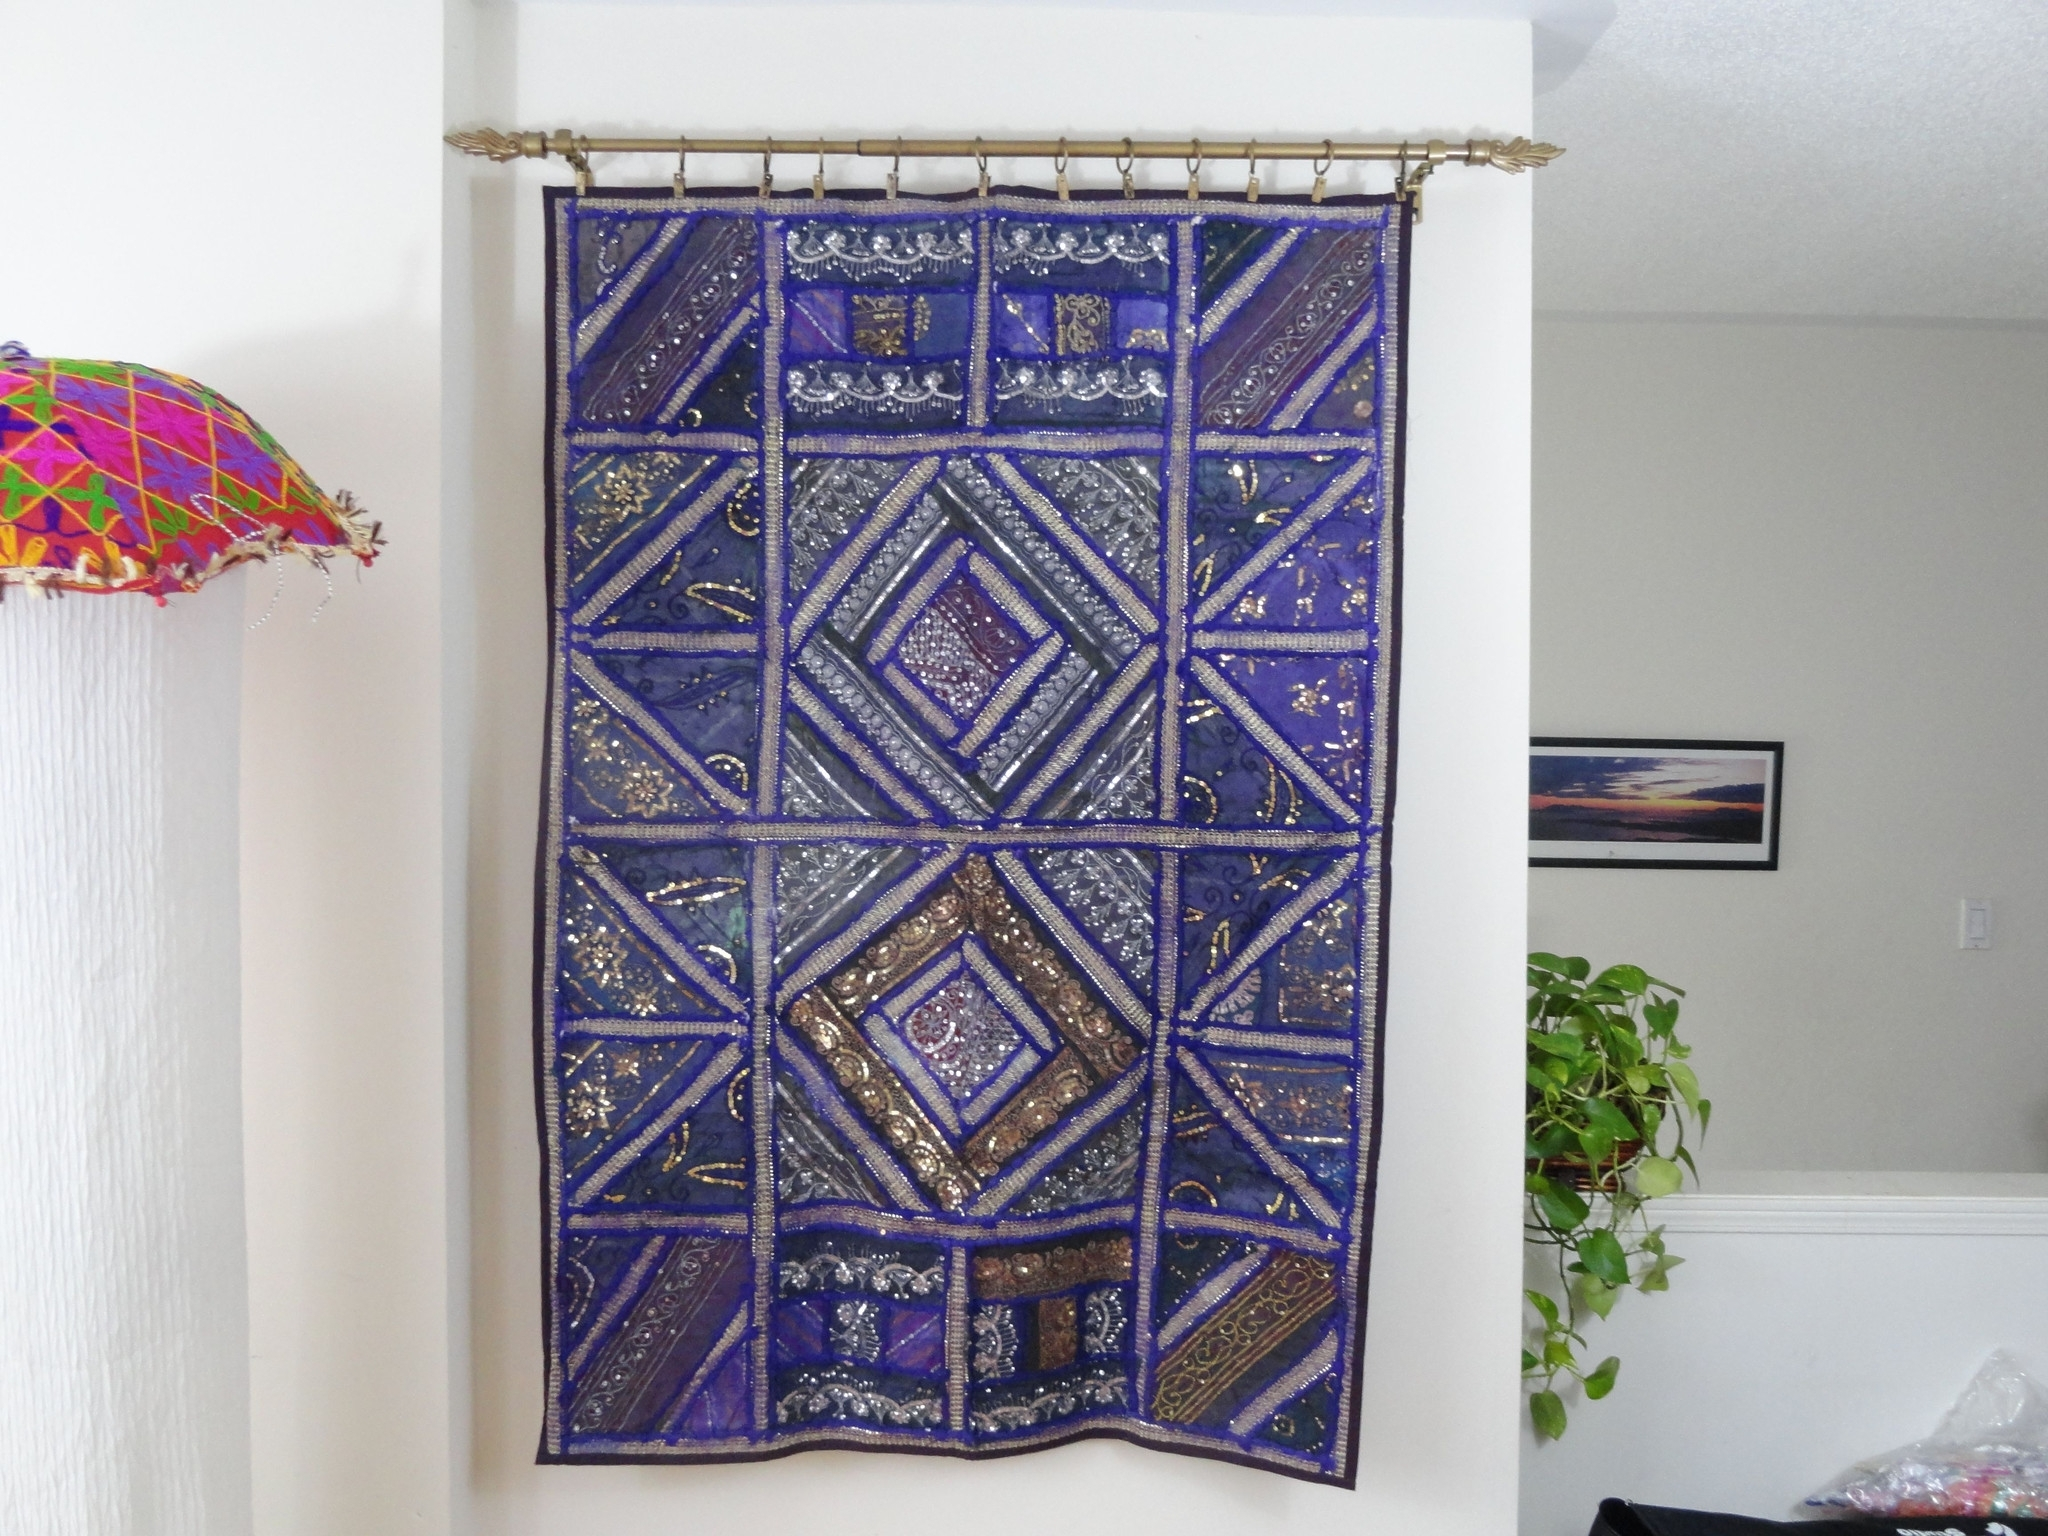 Ethnic Gifts For The Home Fabric Wall Tapestry. Wall Hanging With Regard To 2017 Fabric Wall Hangings Art (Gallery 12 of 15)